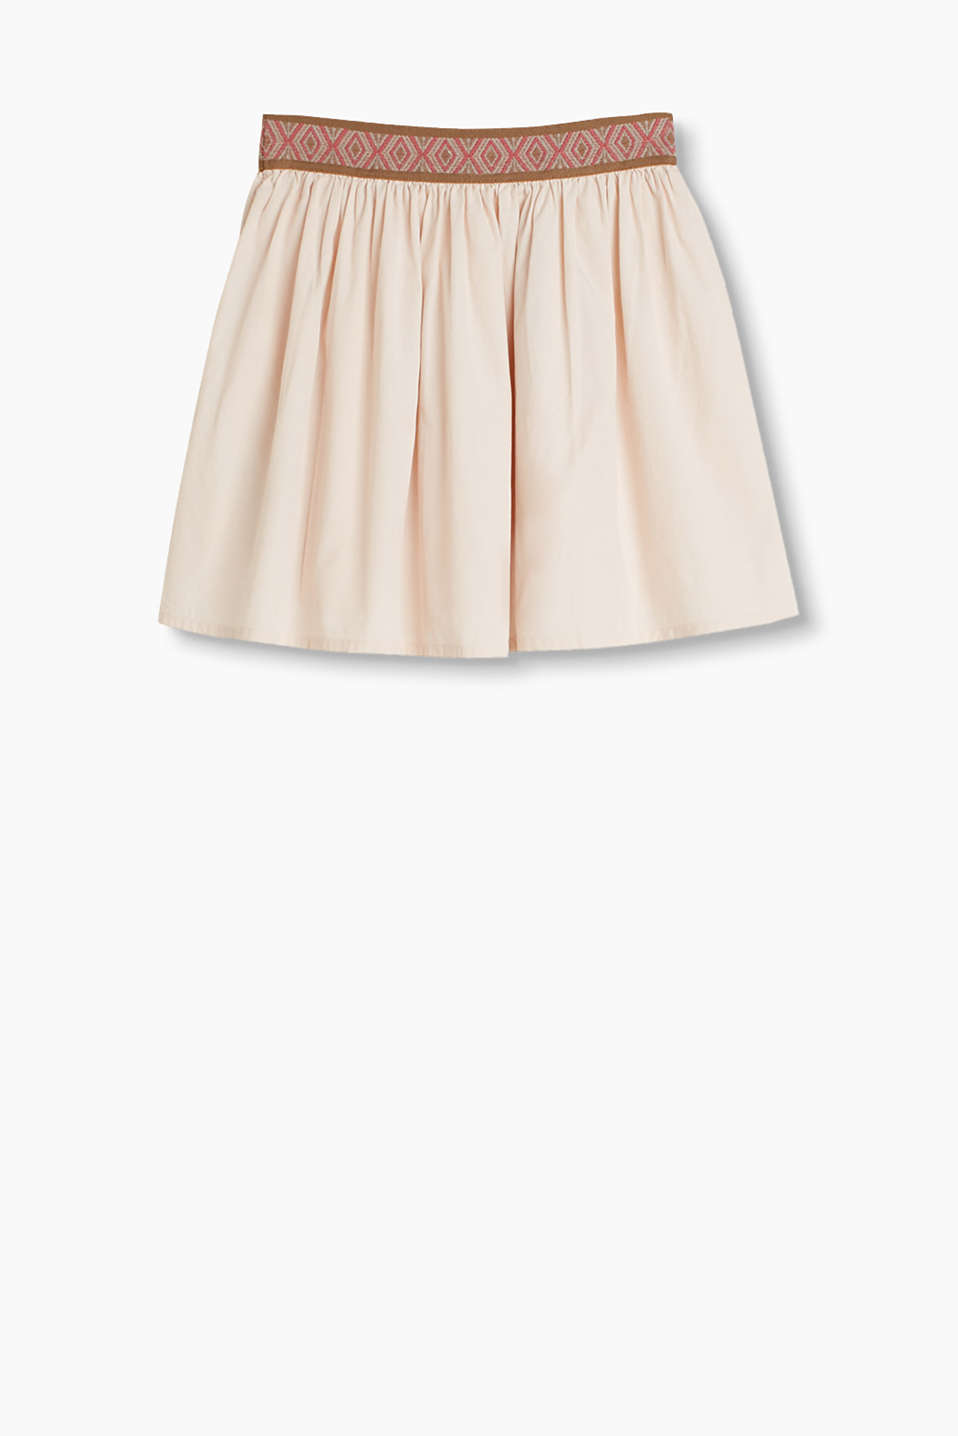 Flared, cotton poplin skirt with a decoratively patterned, elasticated waistband